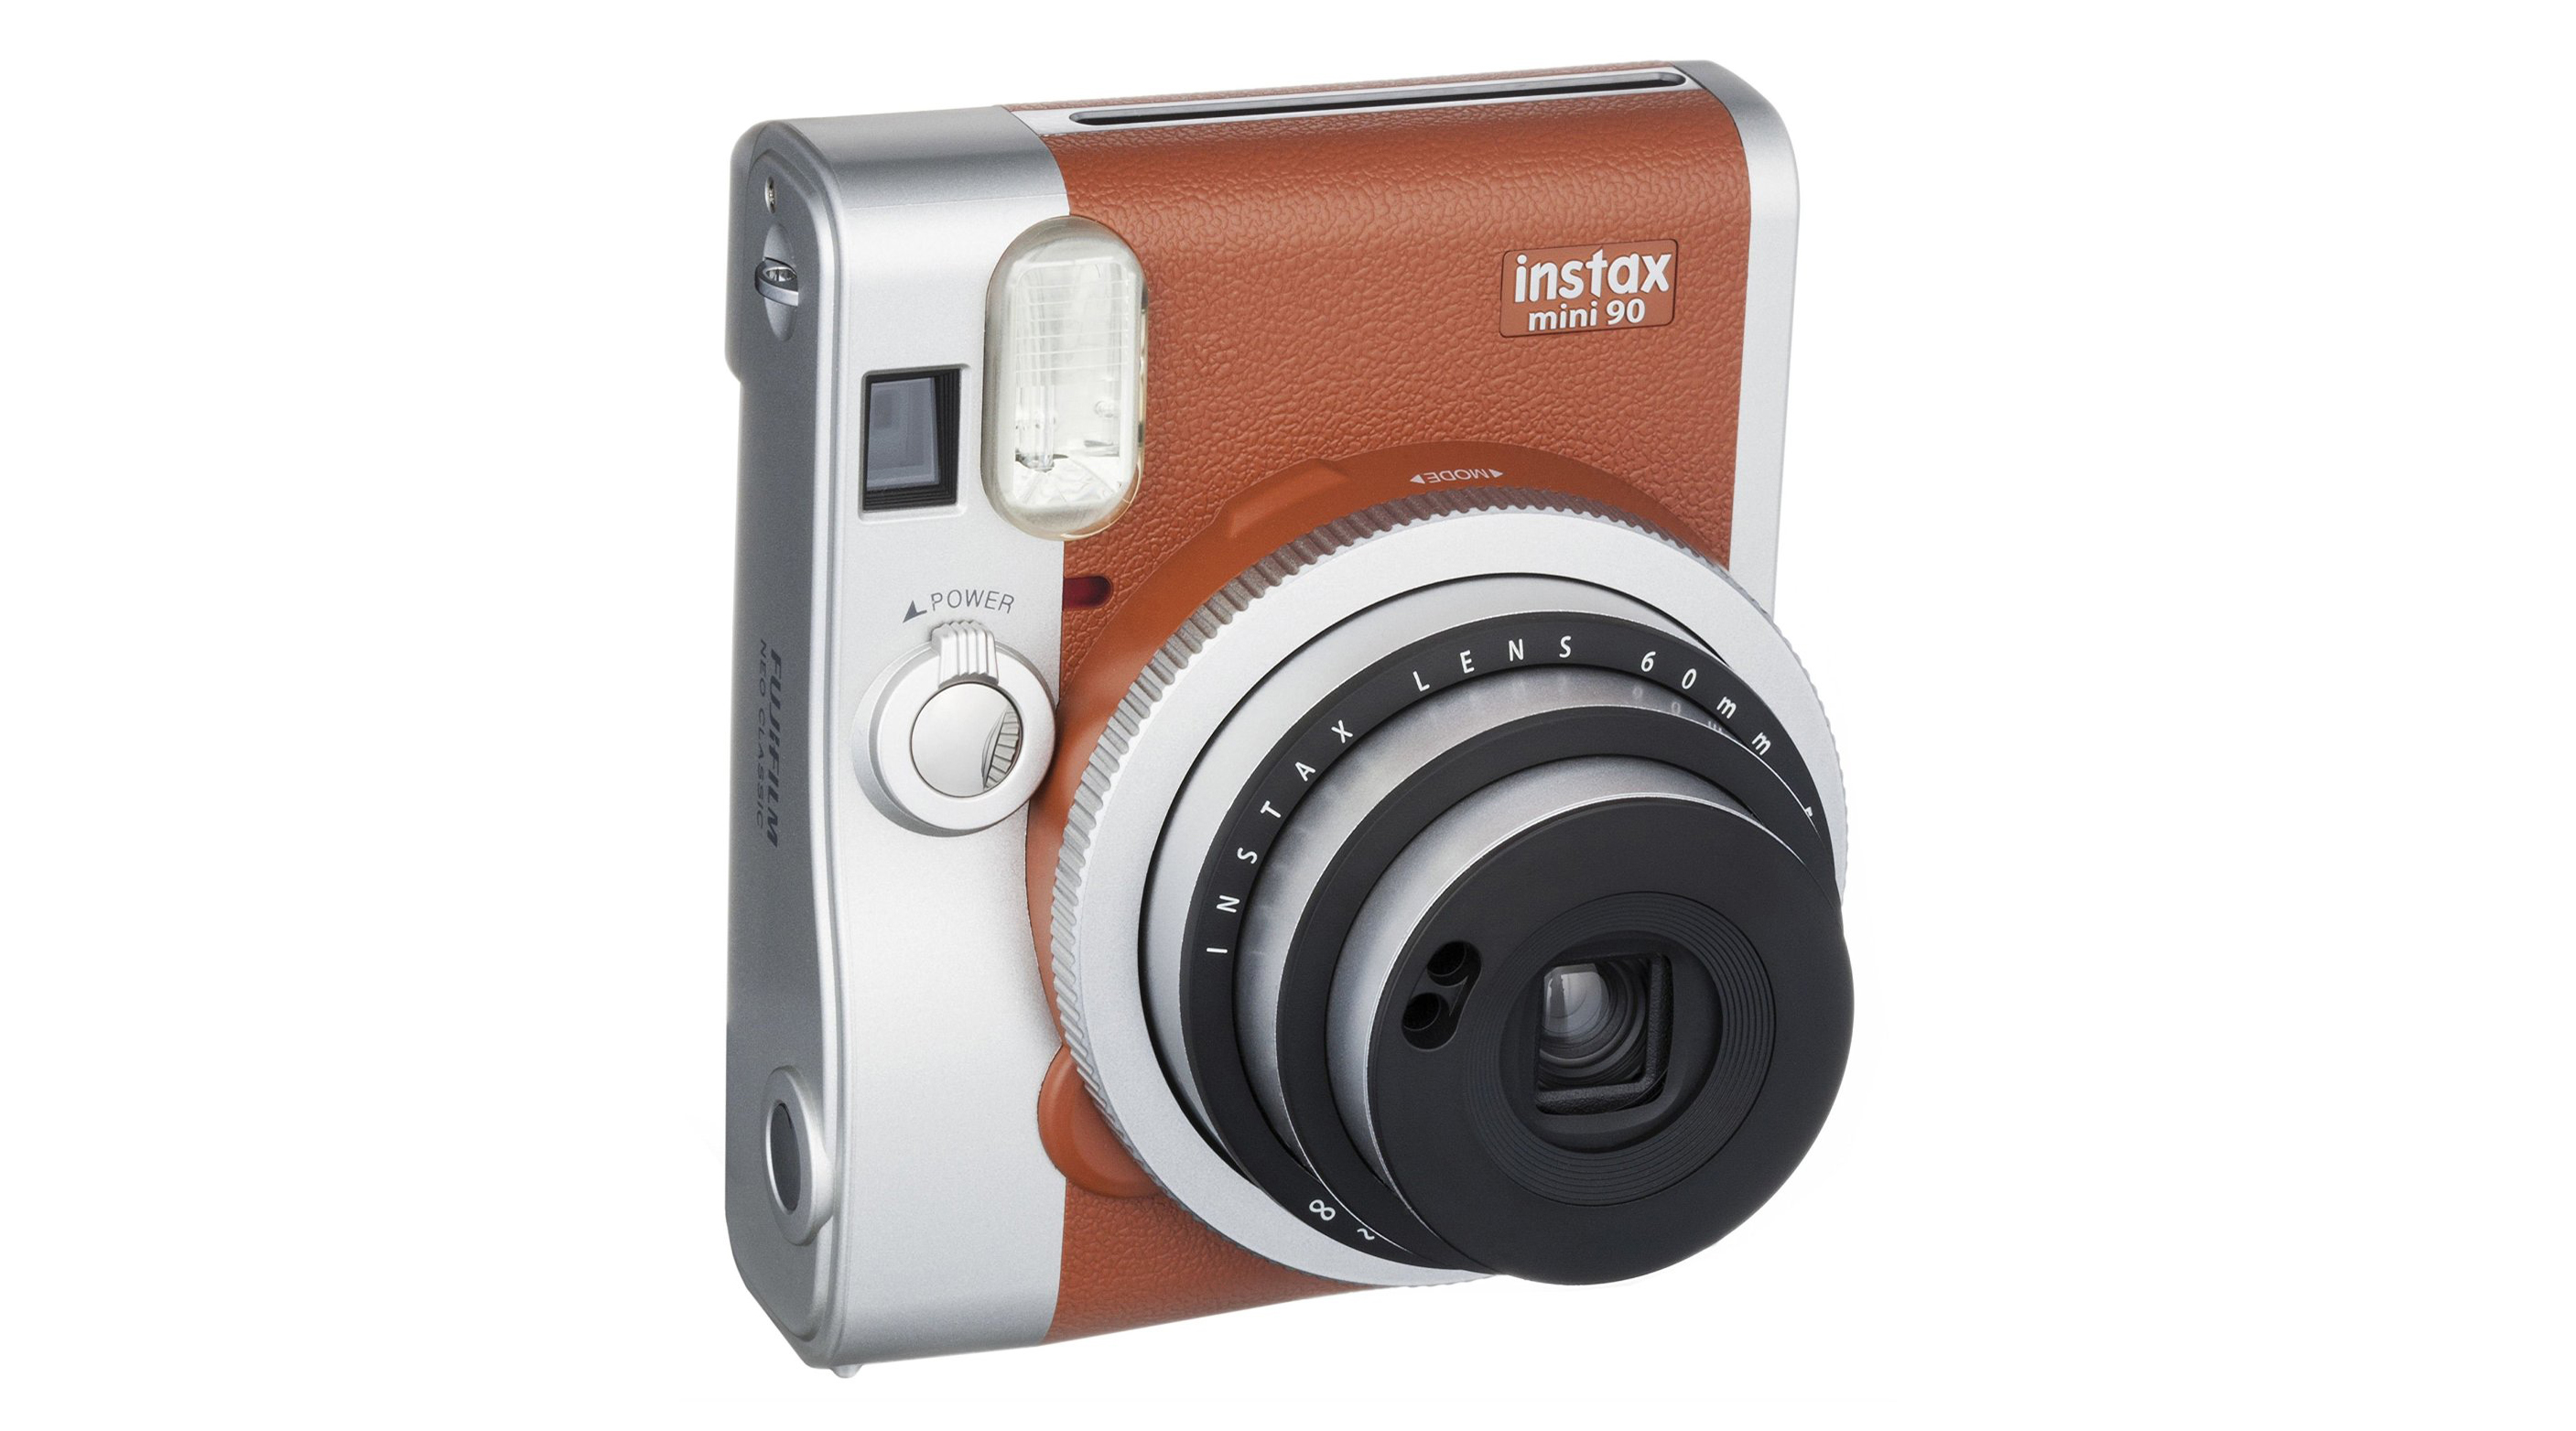 Our favorite instant camera is at its lowest price this year